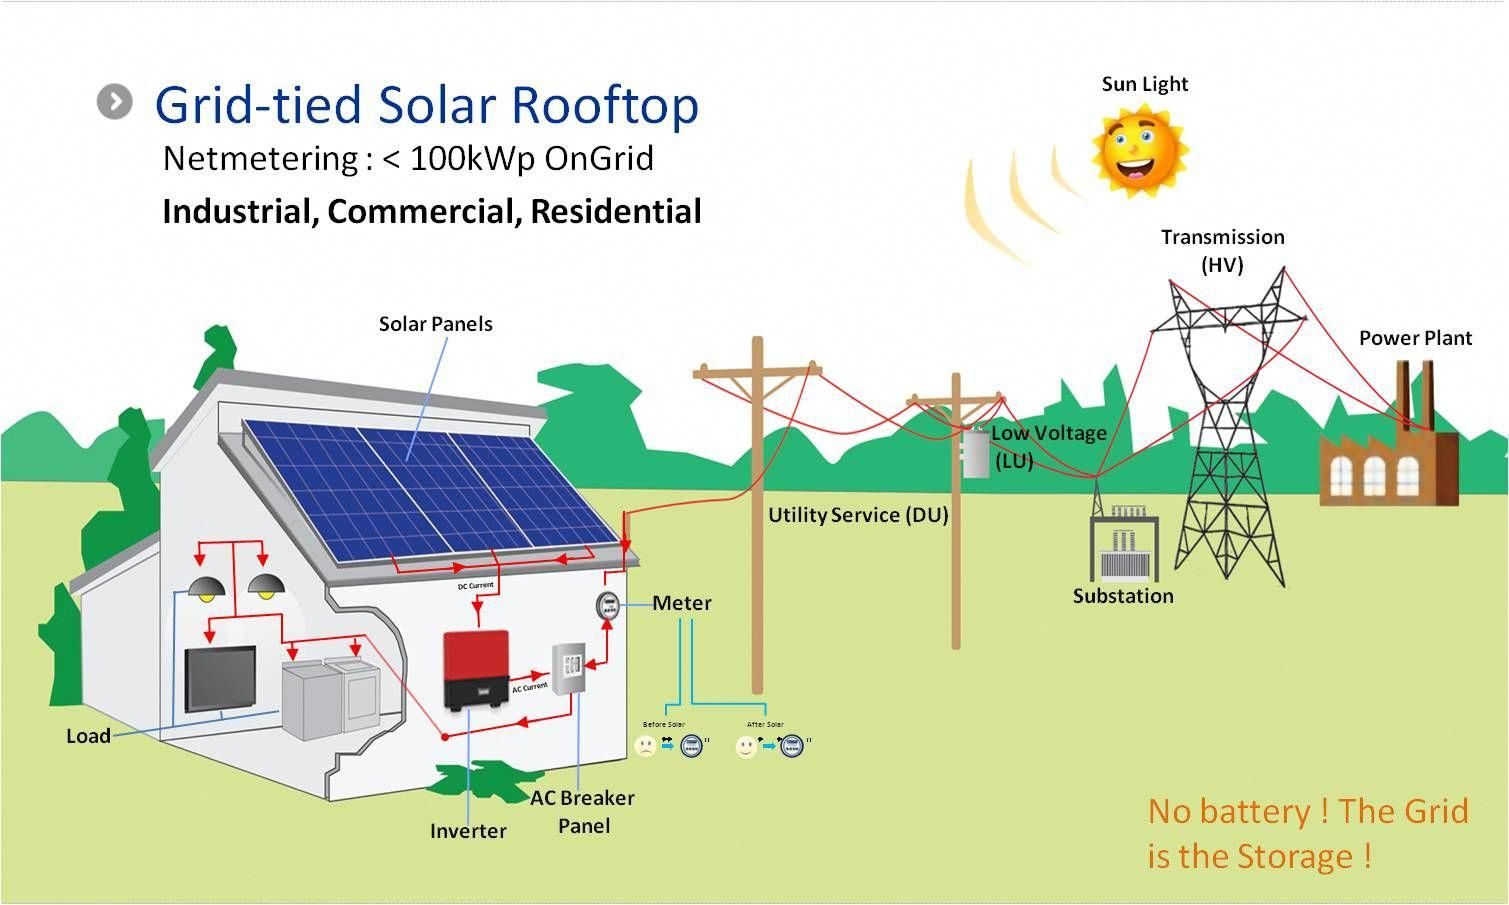 Hooking Up A Solar Powered Home To The Grid Solarenergy Solarpanels Solarpower Solarpanelsforhome Solarpanelkits Solarpoweredgenerator Solarshing Solar Heating